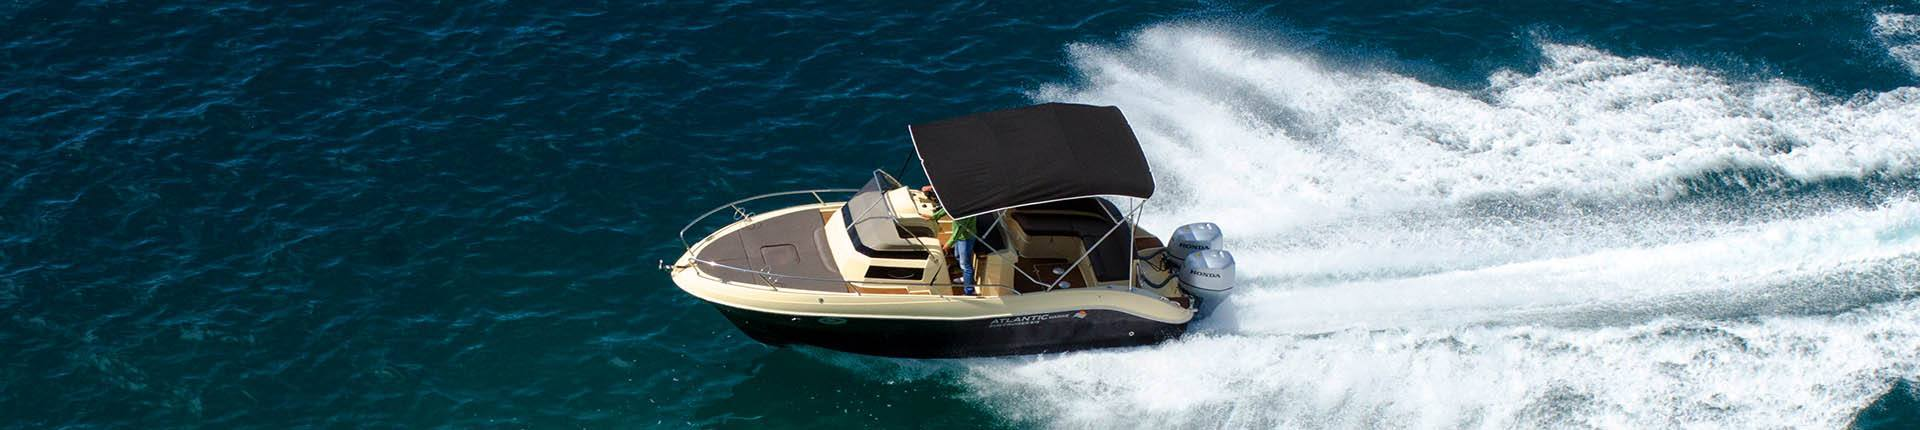 Boat transfer Dubrovnik |  Transfer from Dubrovnik to the islands